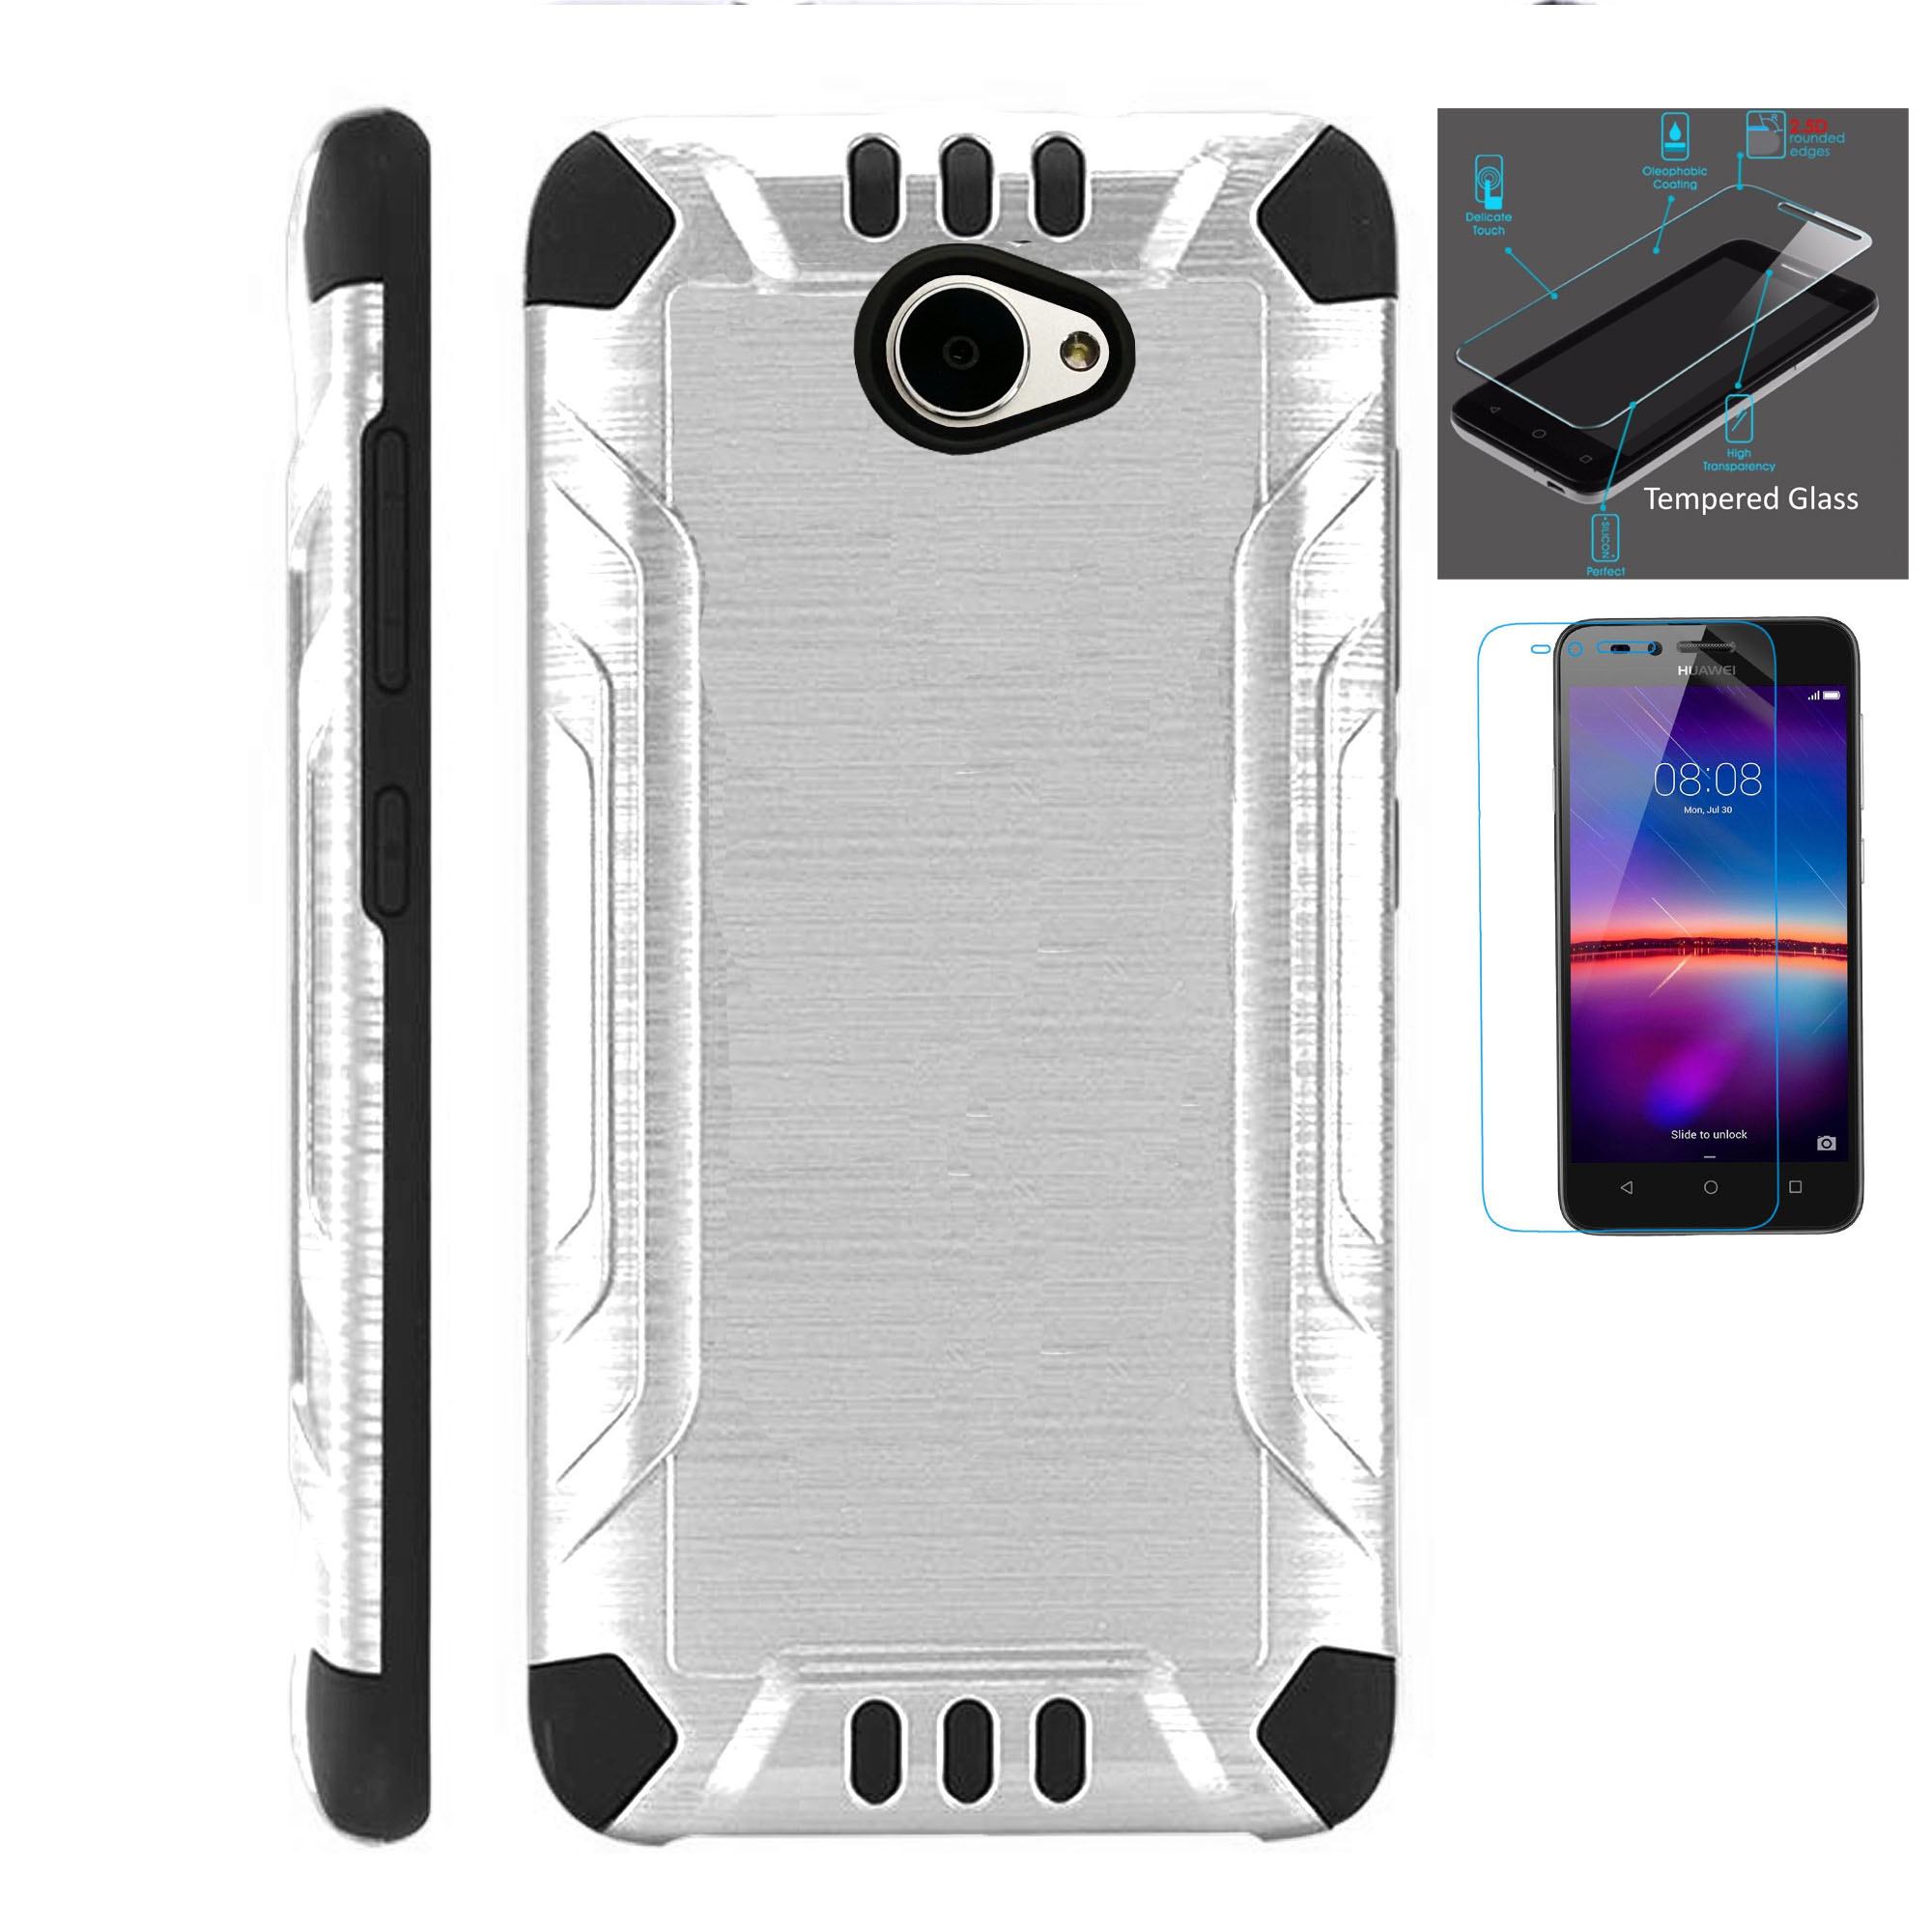 For Huawei Ascend XT2 / Huawei Ascend XT 2 / Huawei Elate 4G Case + Tempered Glass Slim Dual Layer Brushed Metal Texture Hybrid TPU Combat Phone Cover (Silver/Black)